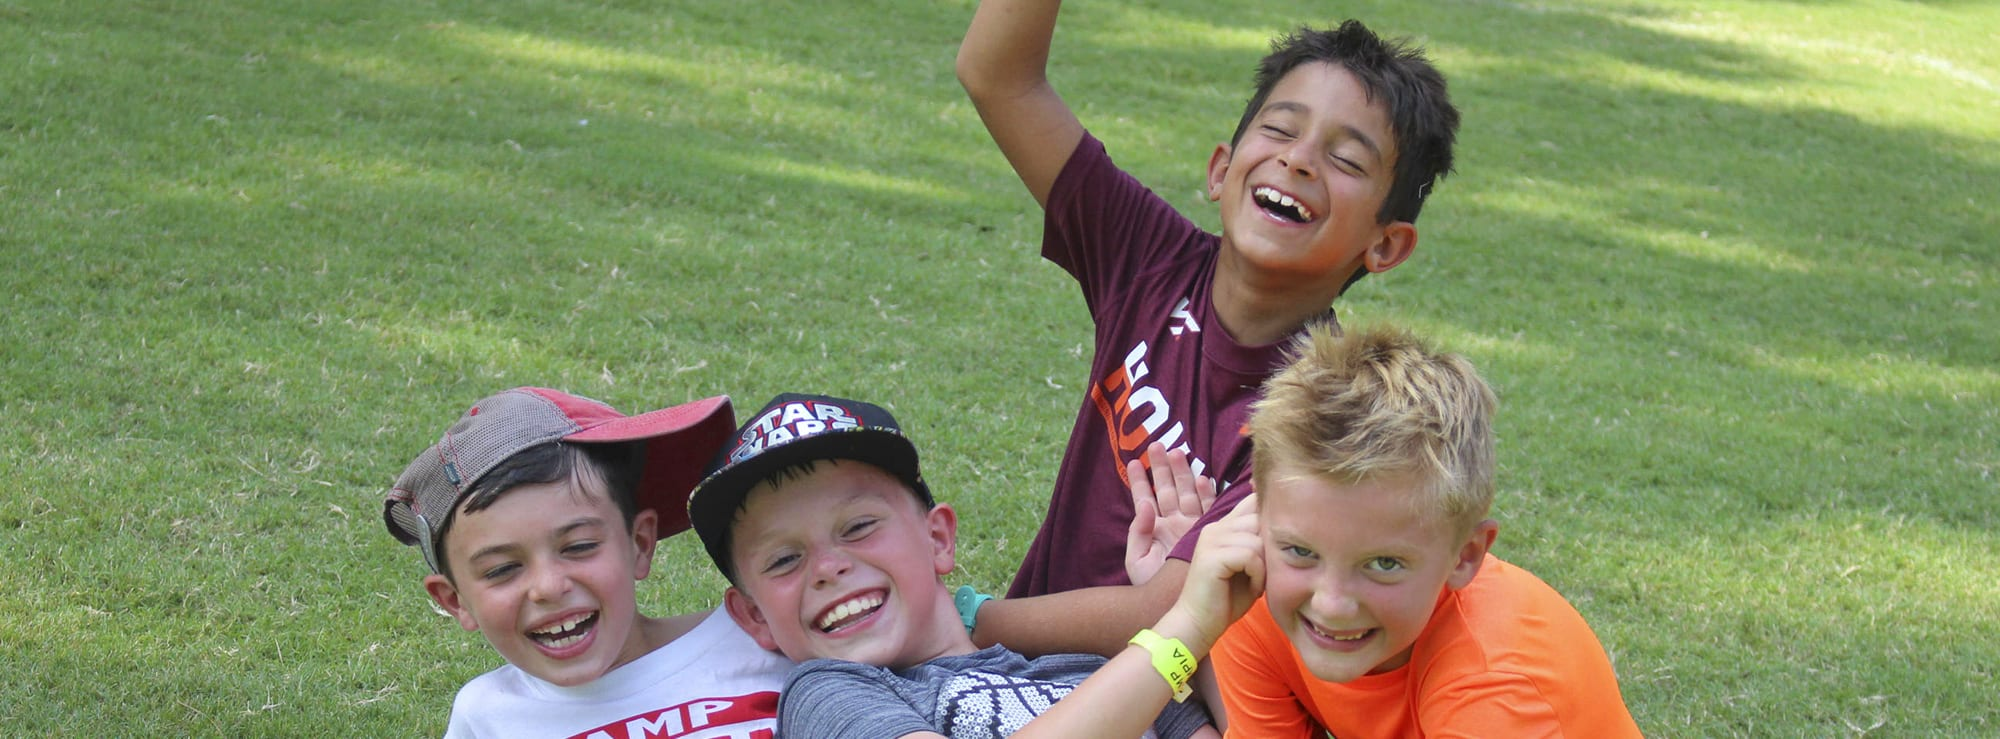 Close-up of four campers smiling and laughing while playing outdoors.